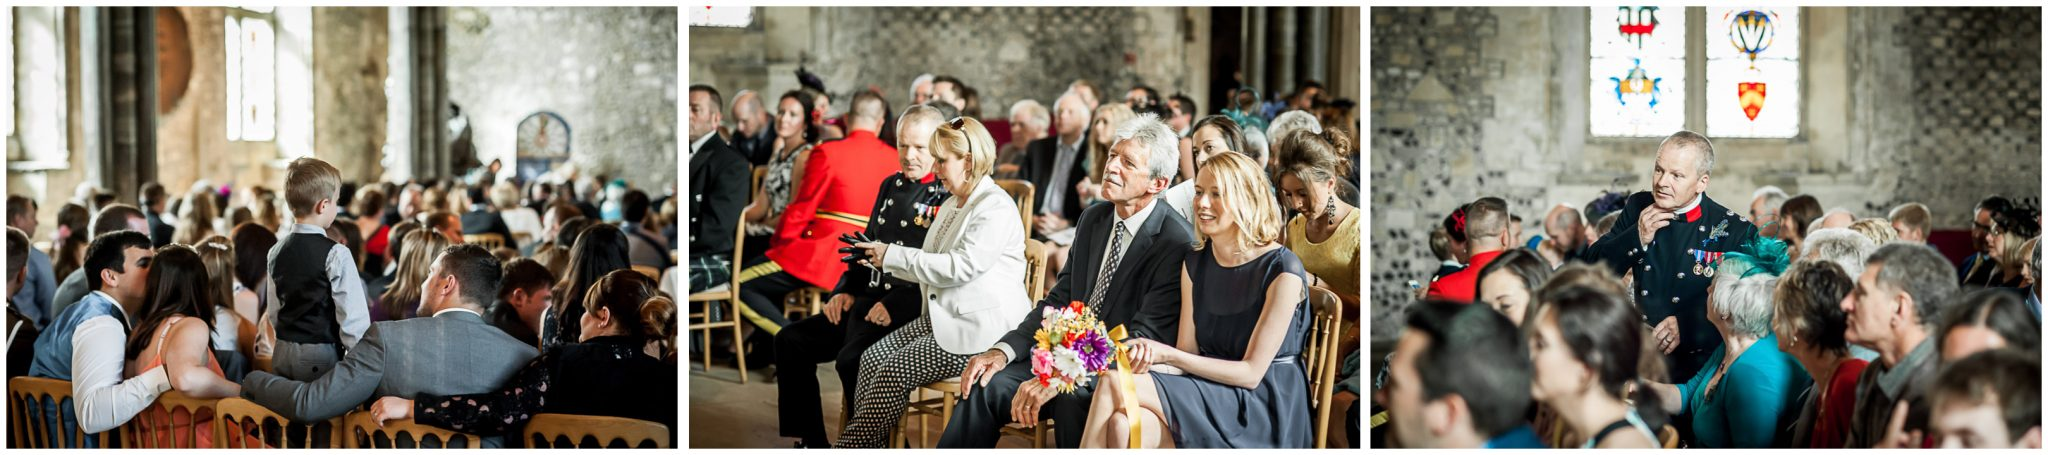 Winchester Great Hall wedding photography candid images of guests